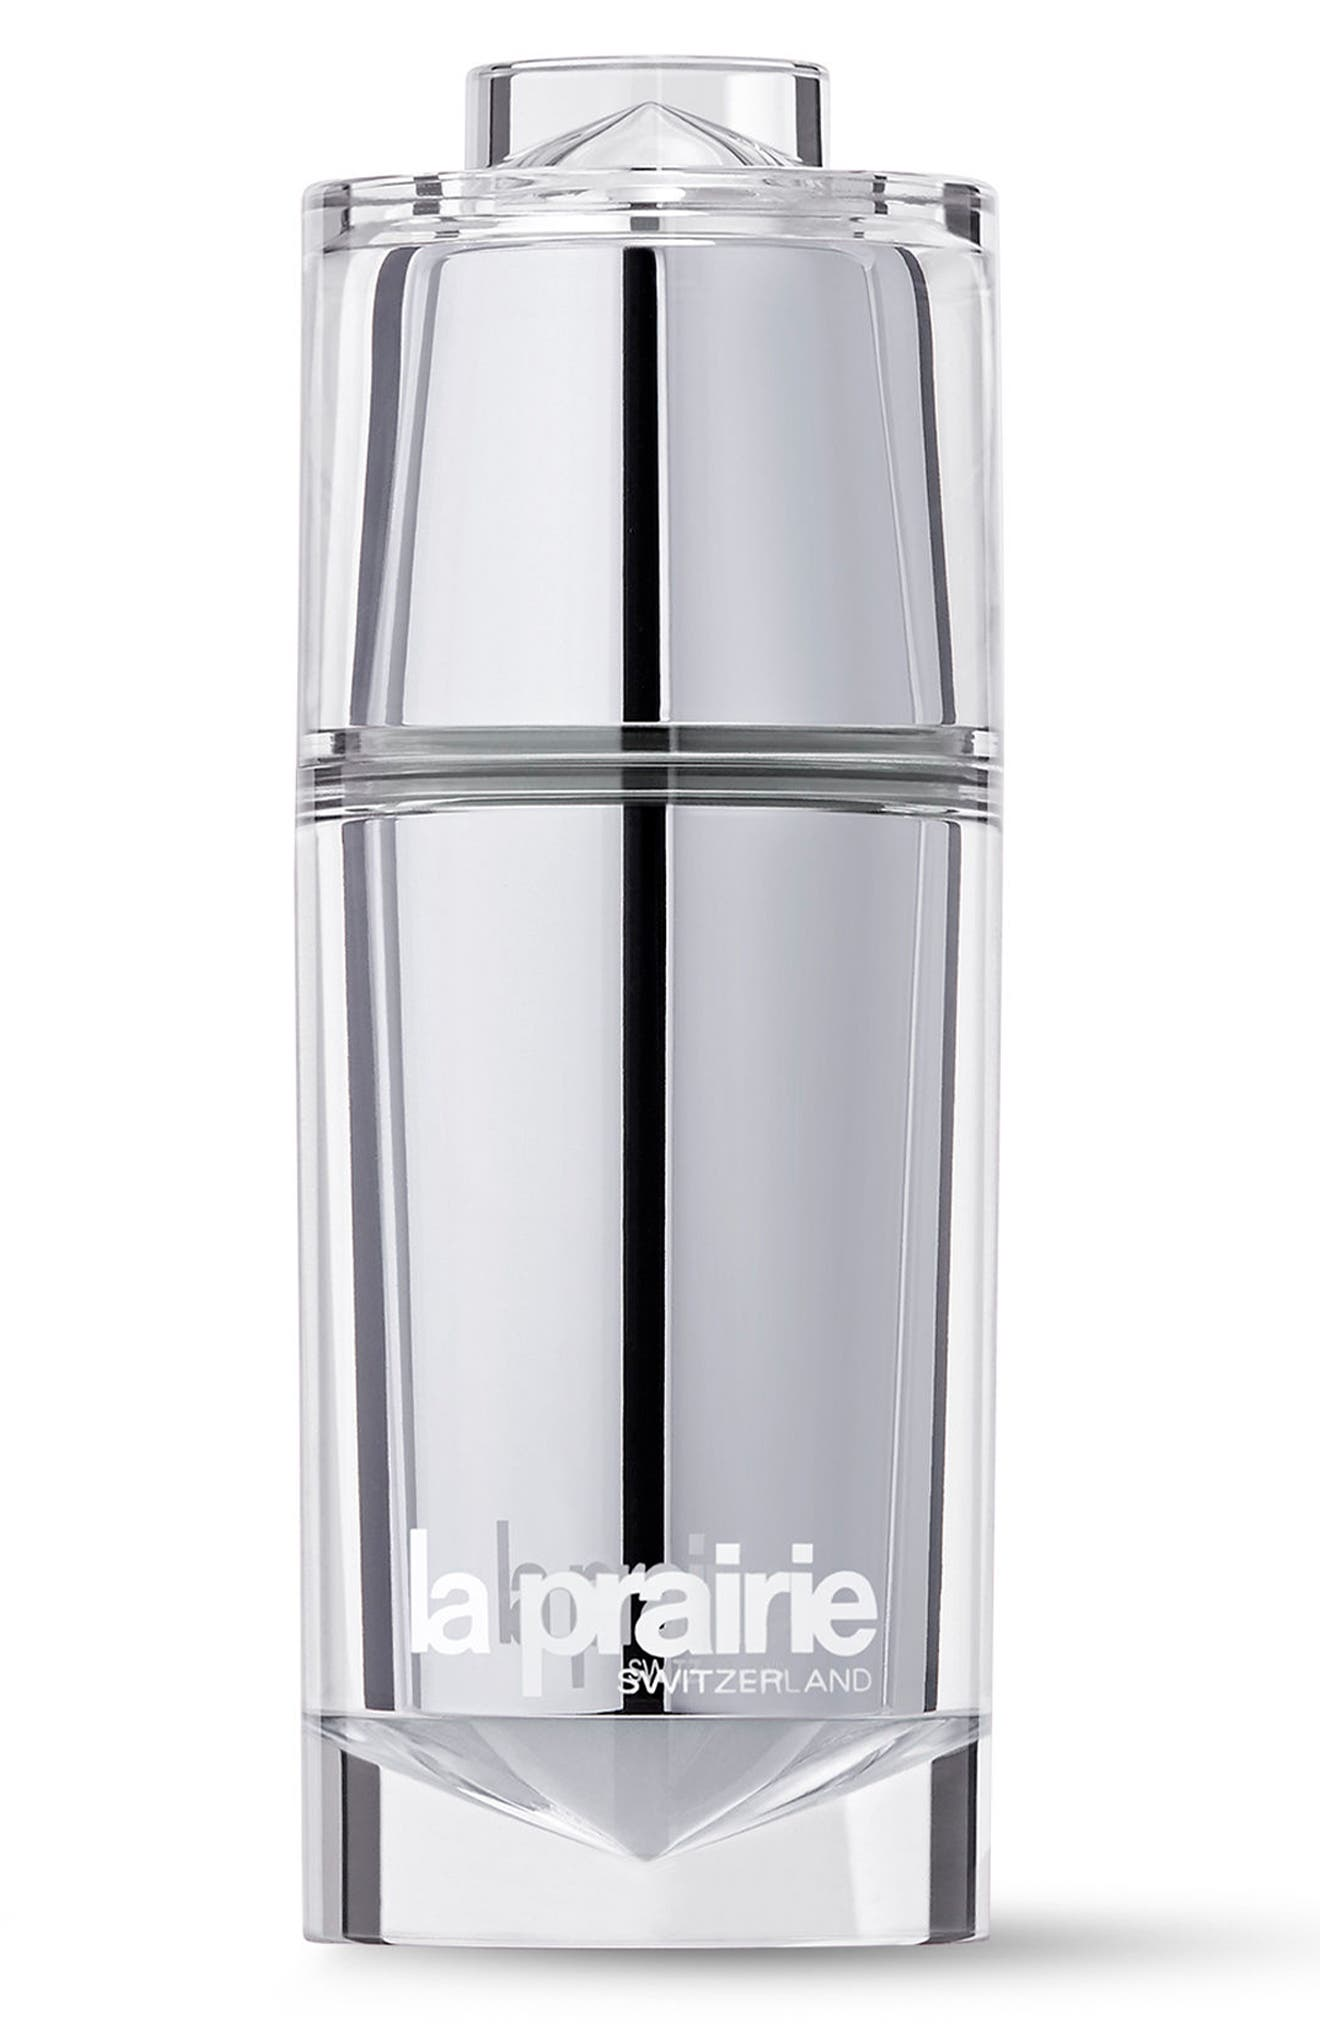 Main Image - La Prairie Cellular Eye Essence Platinum Rare